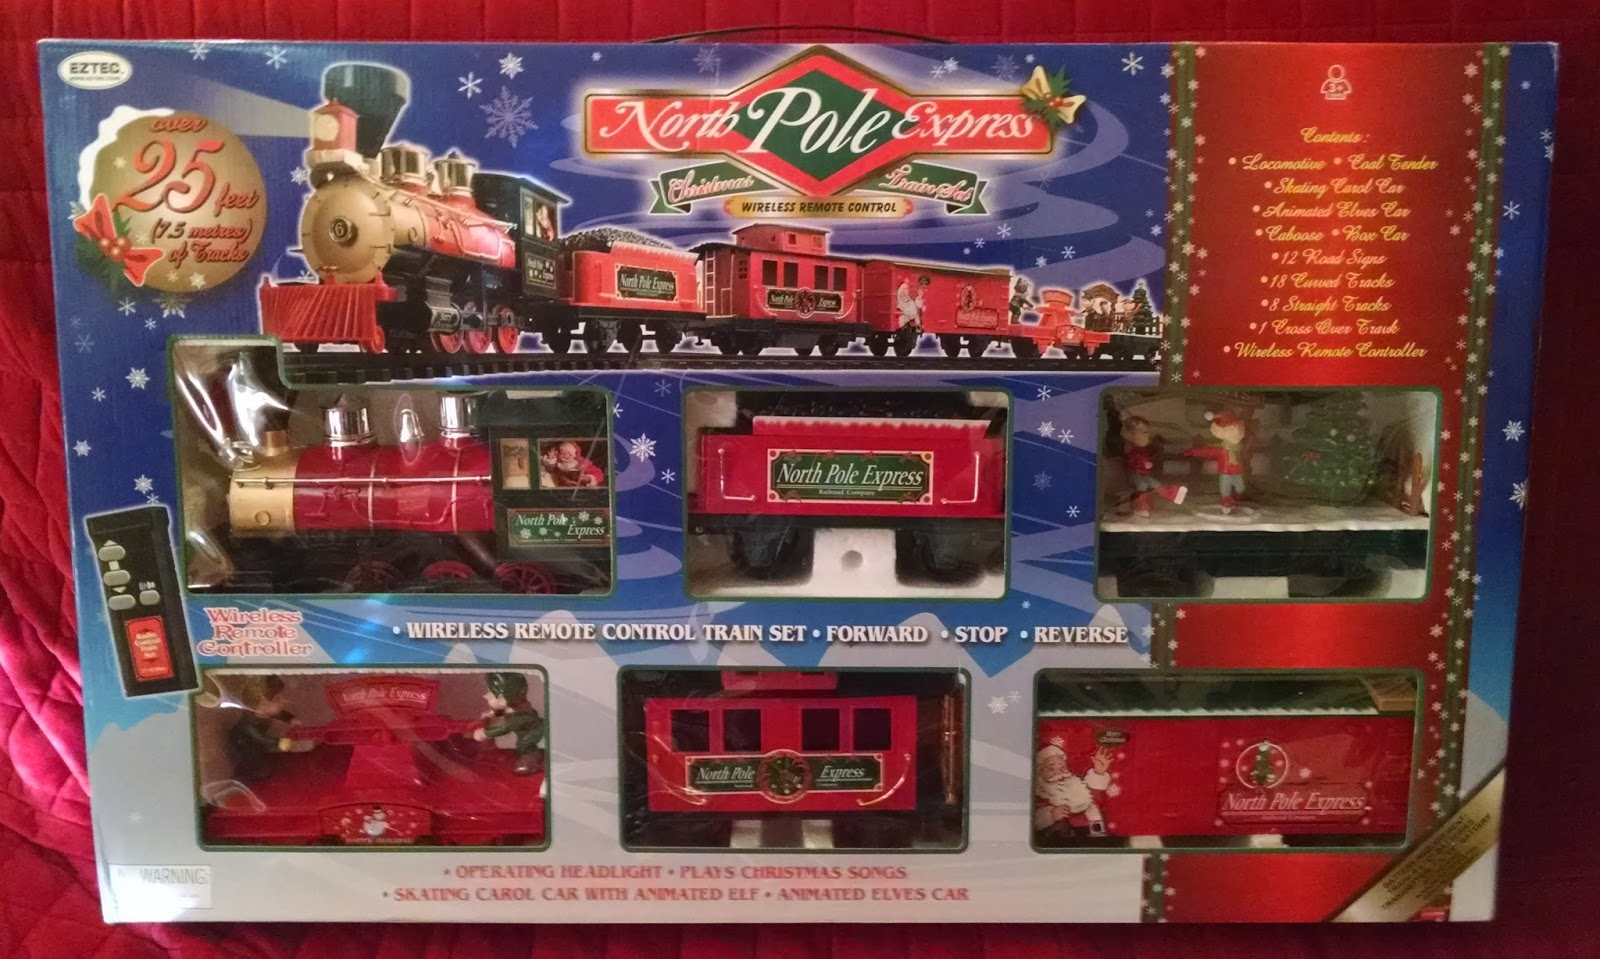 Toy Review: North Pole Express Christmas Train Set